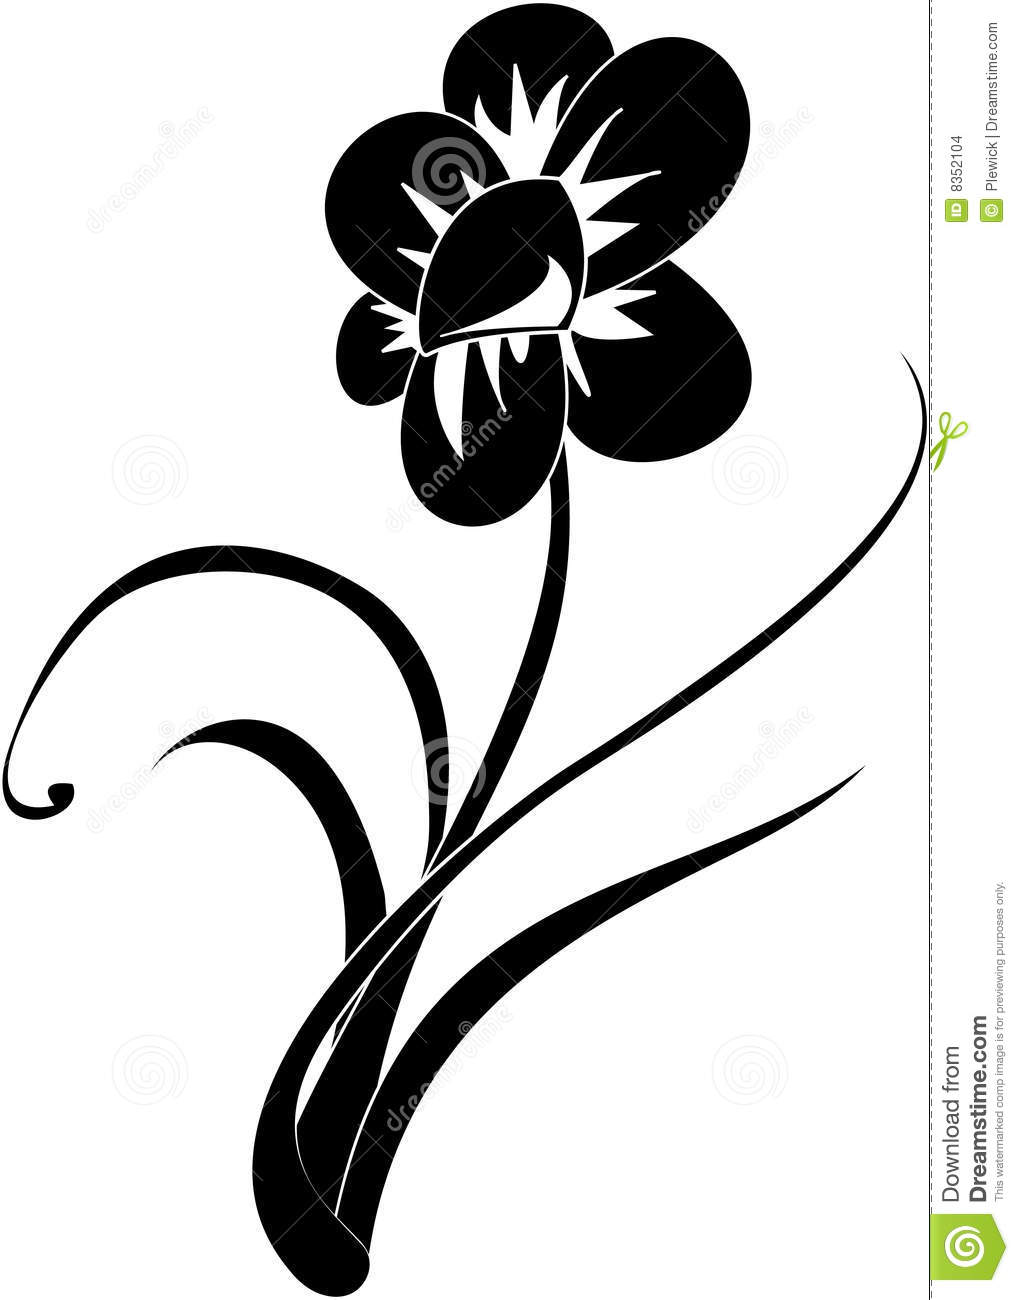 Black and white flower stock illustration illustration of stylized black and white flower mightylinksfo Choice Image